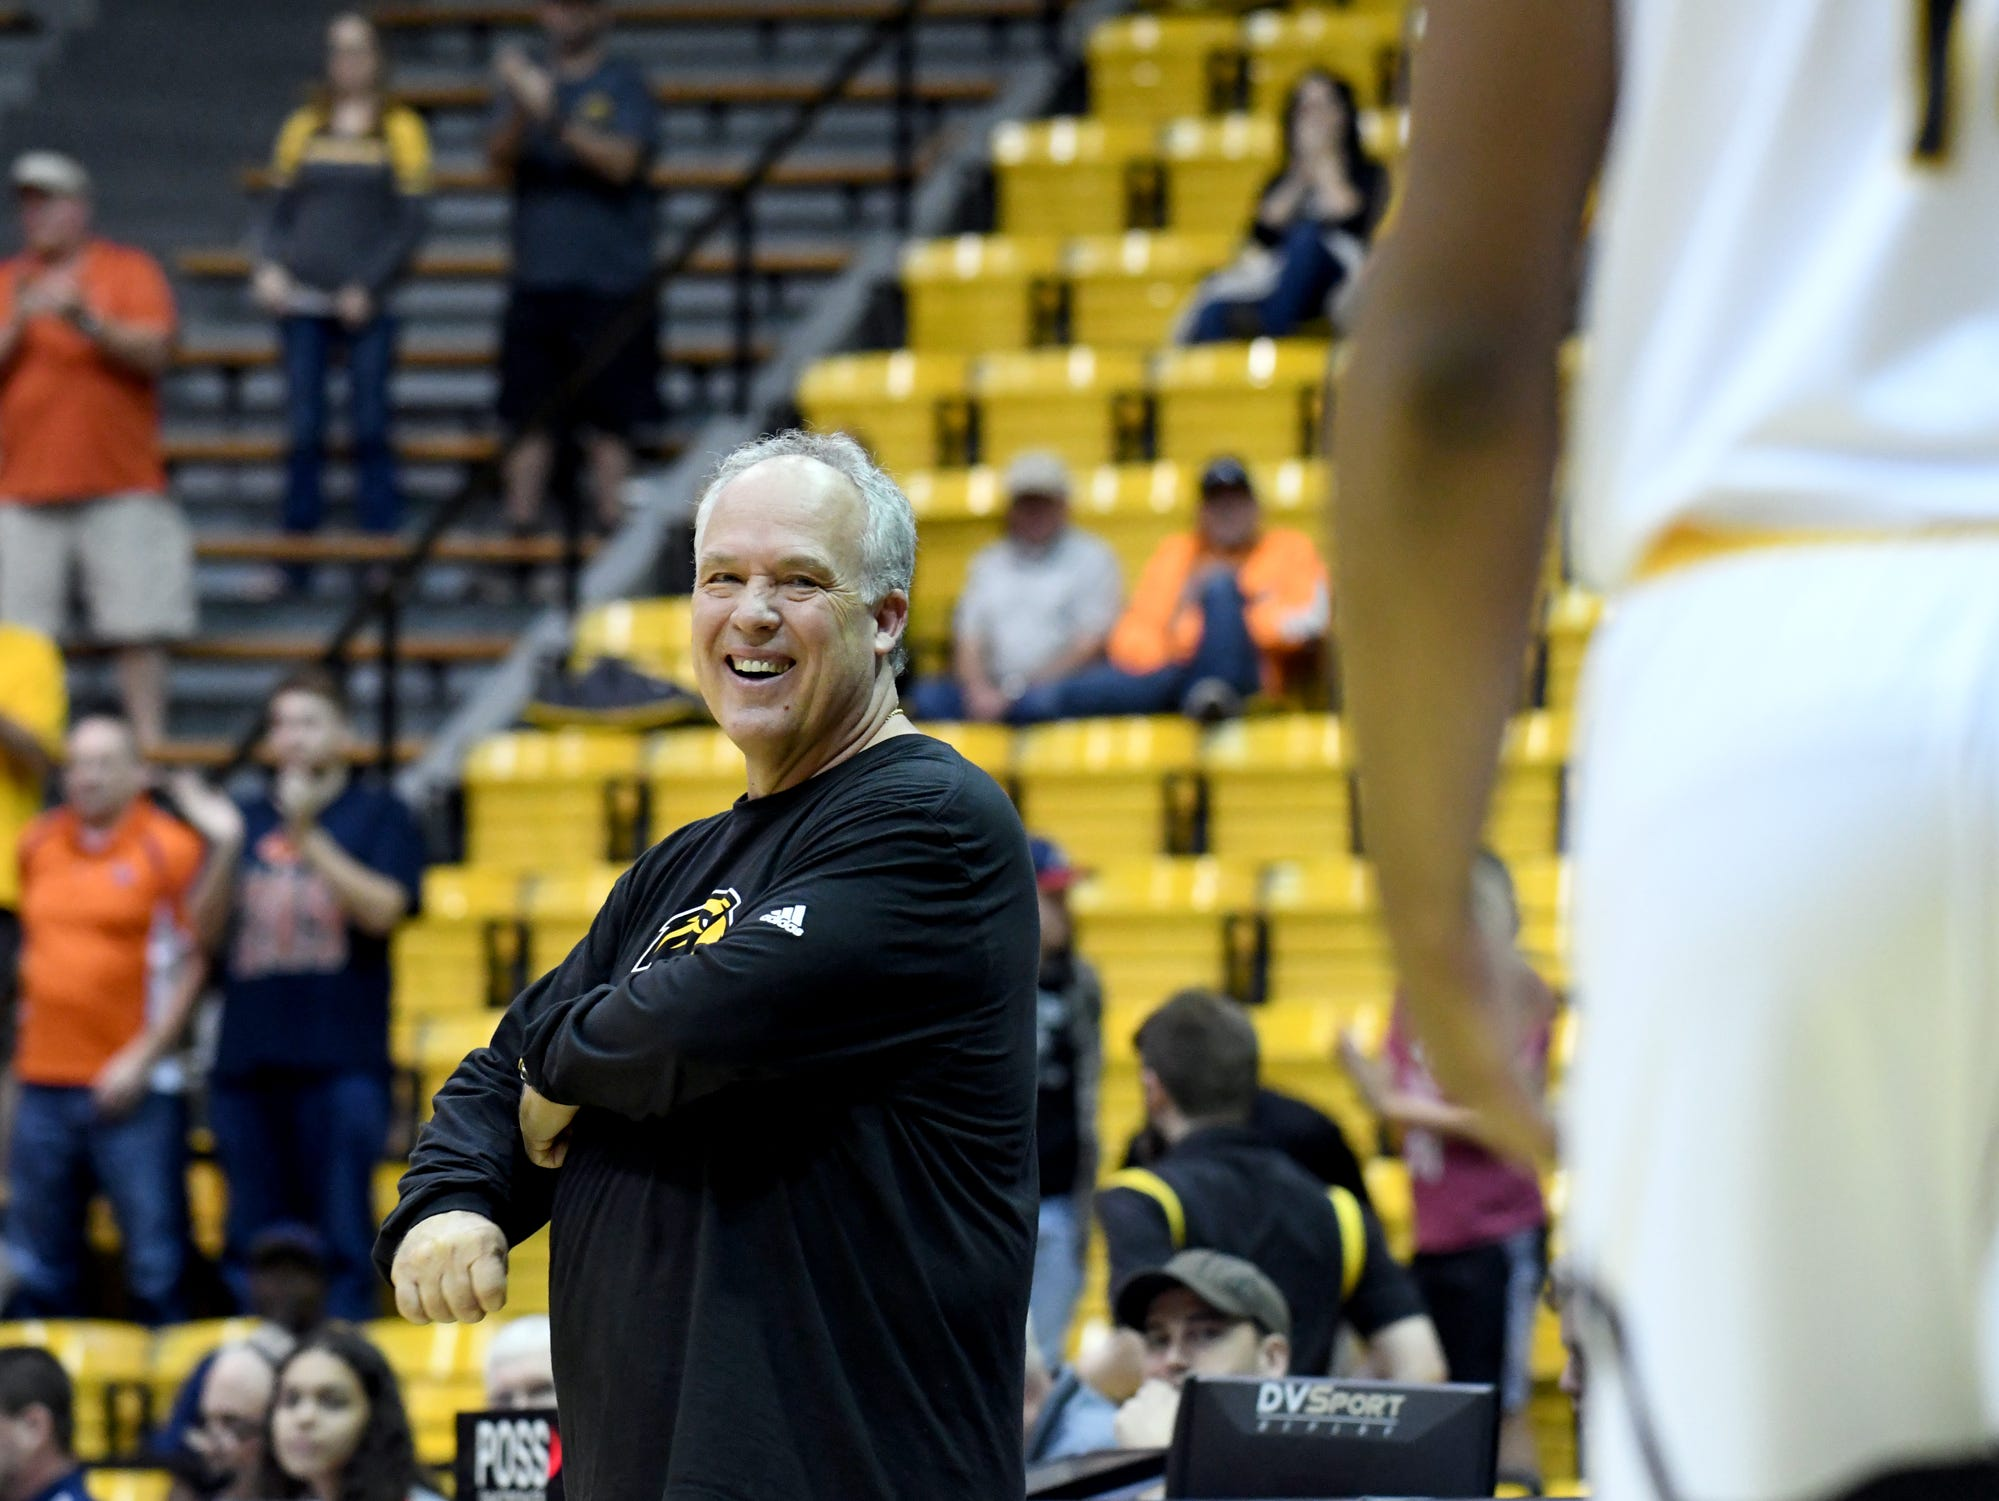 Southern Miss head coach Doc Sadler smiles after beating  UTSA in Reed Green Coliseum on Saturday, March 9, 2019.